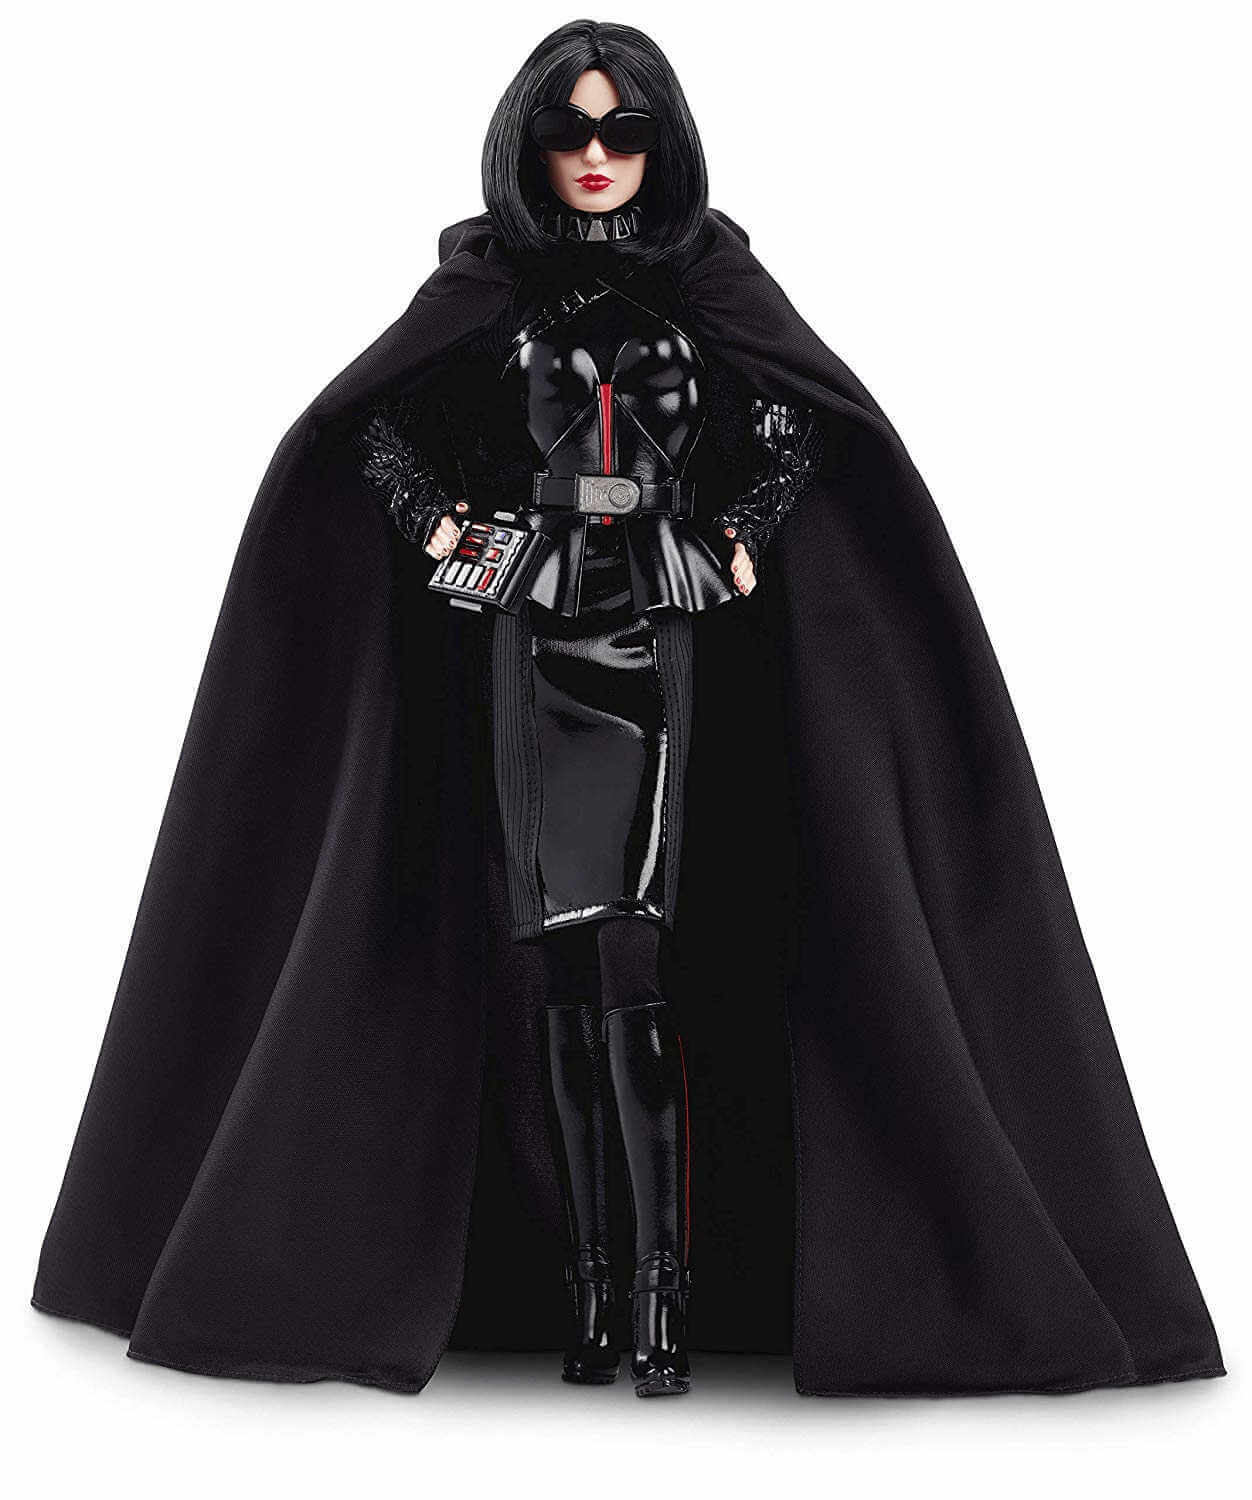 Barbie star wars darth vader